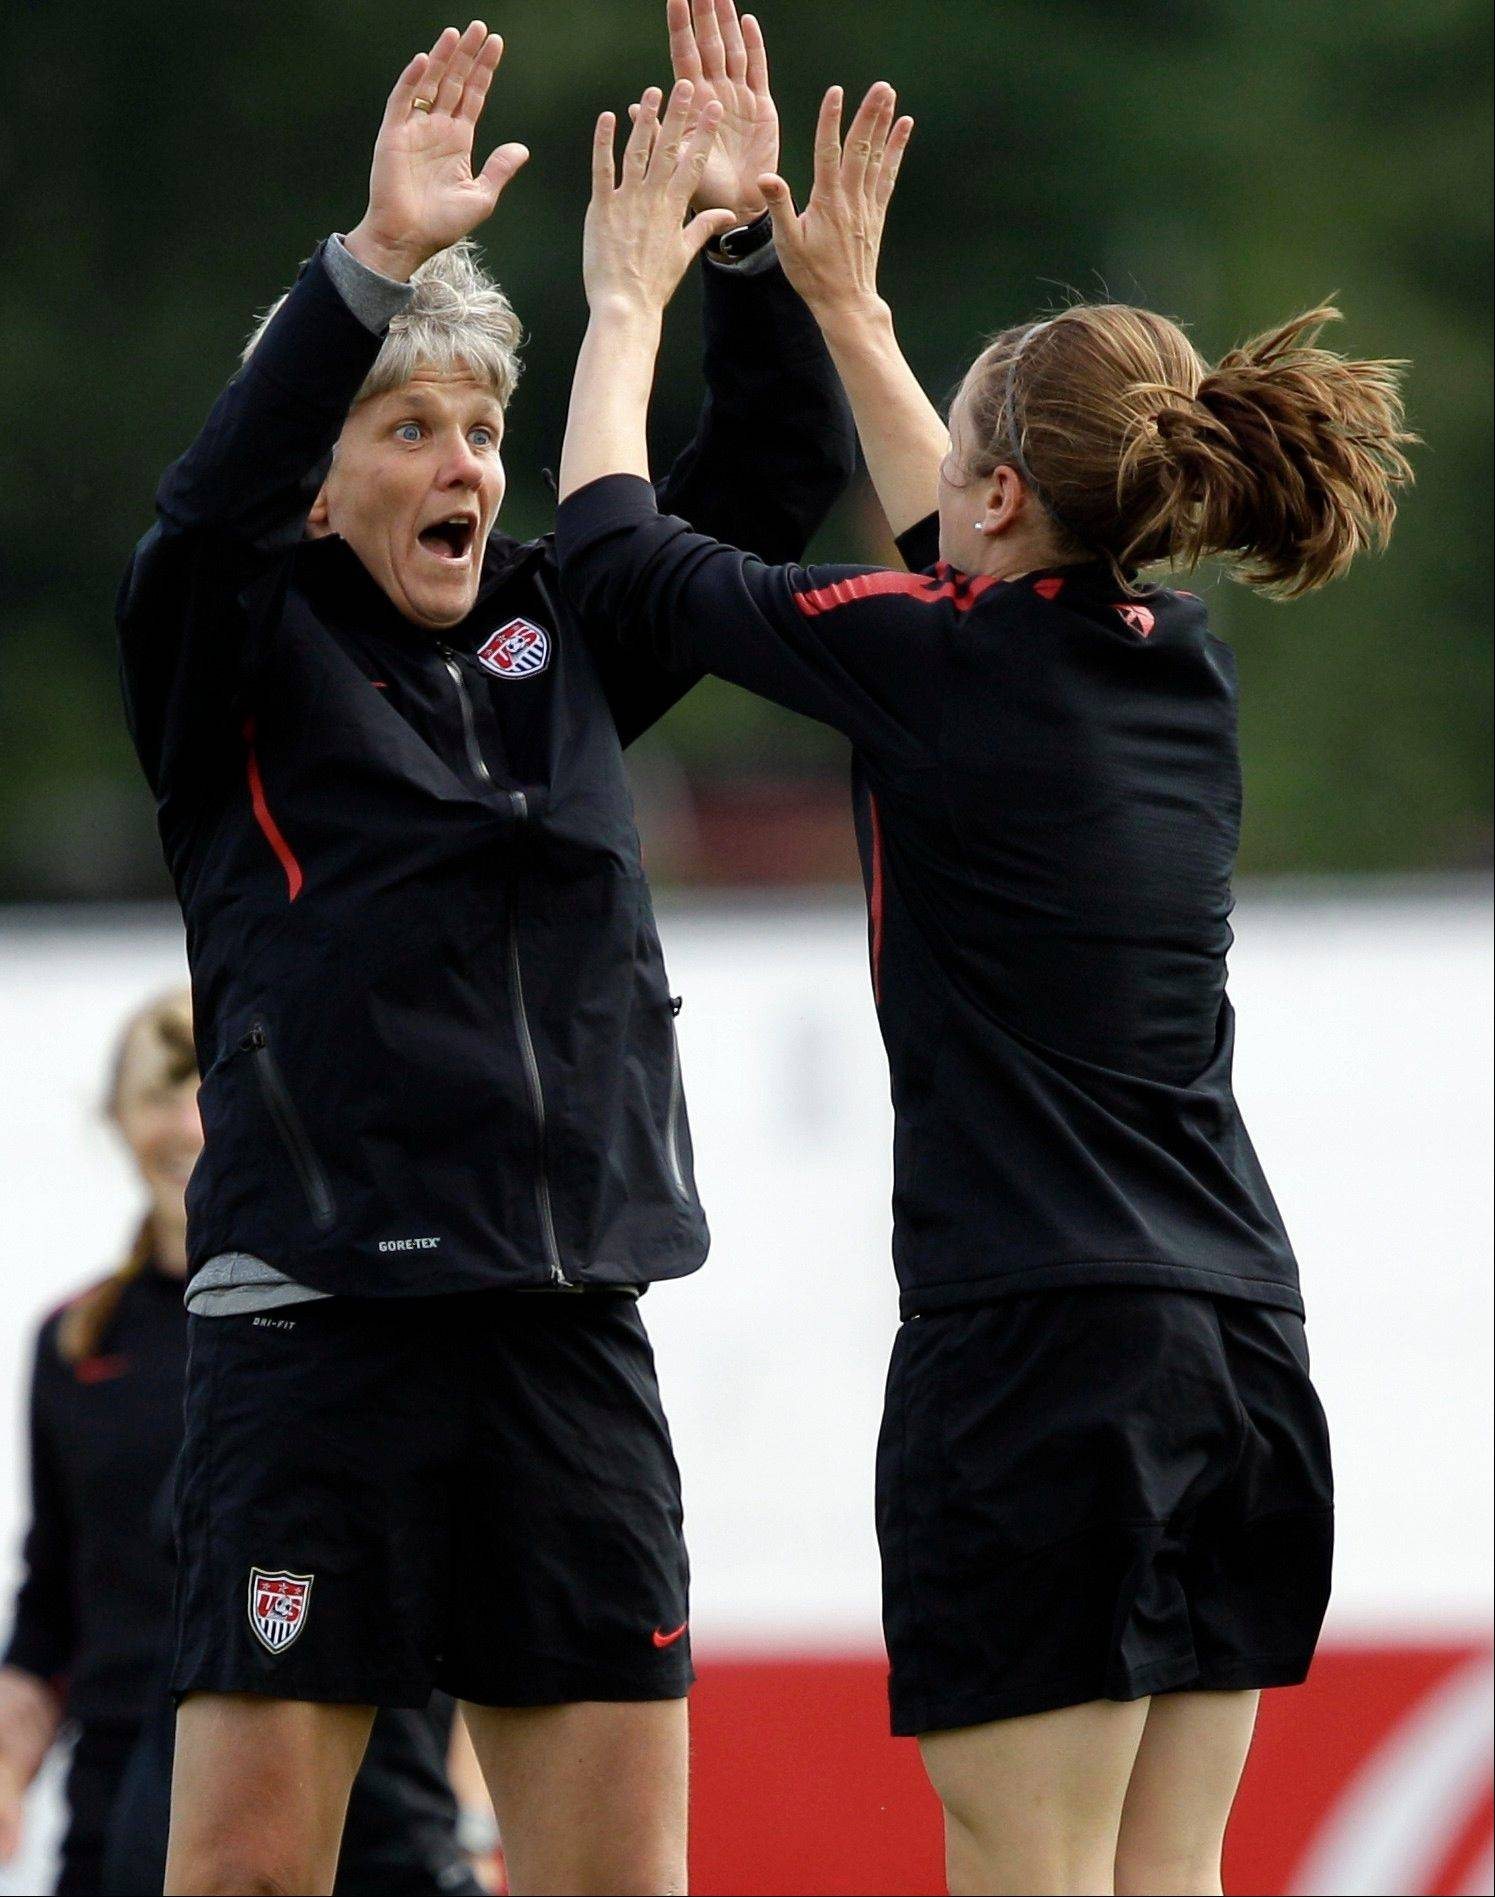 United States head coach Pia Sundhage, left, high fives midfielder Heather O'Reilly Friday during a training session in preparation for the final match against Japan during the Women's Soccer World Cup in Frankfurt, Germany.